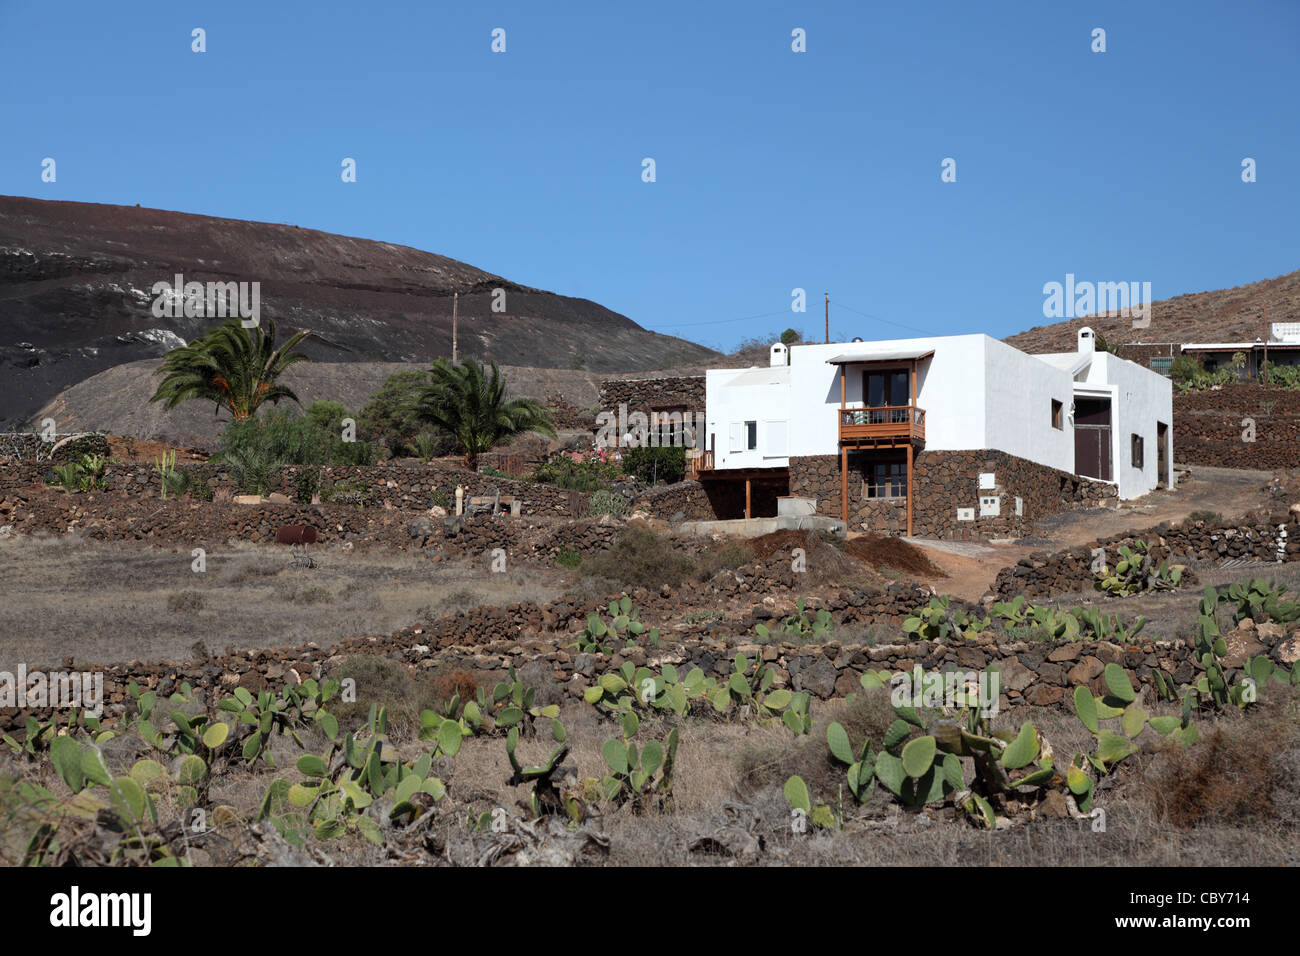 Rural house on Canary Island Lanzarote, Spain - Stock Image